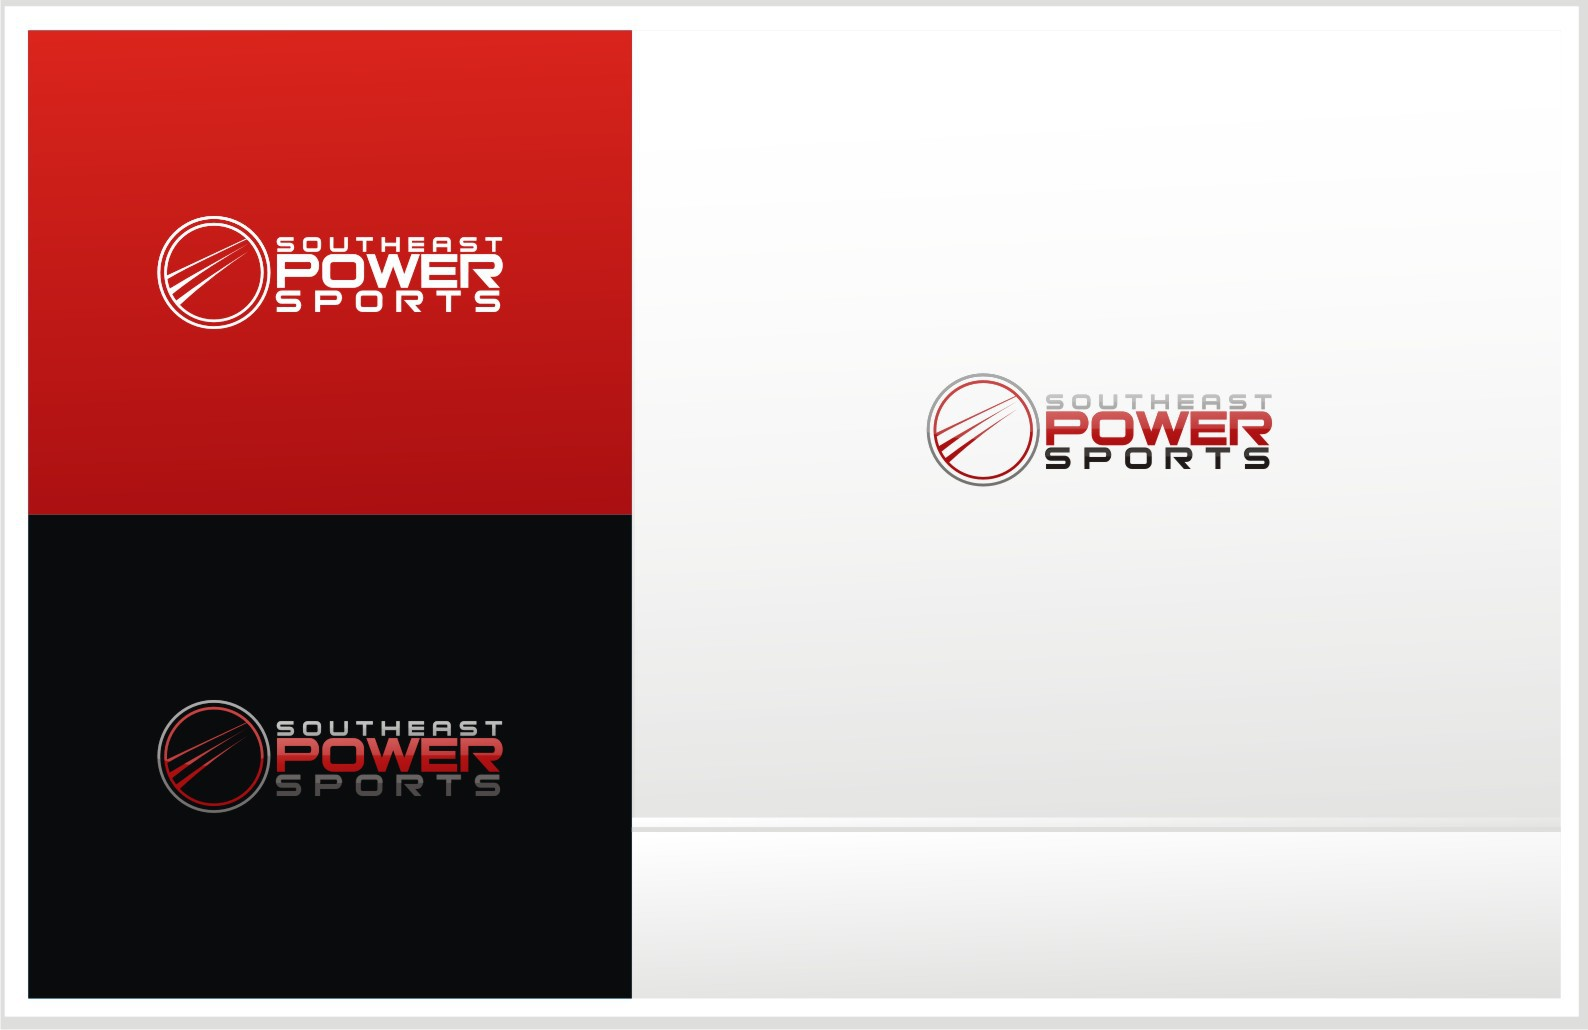 Southeast Powersports needs a new logo